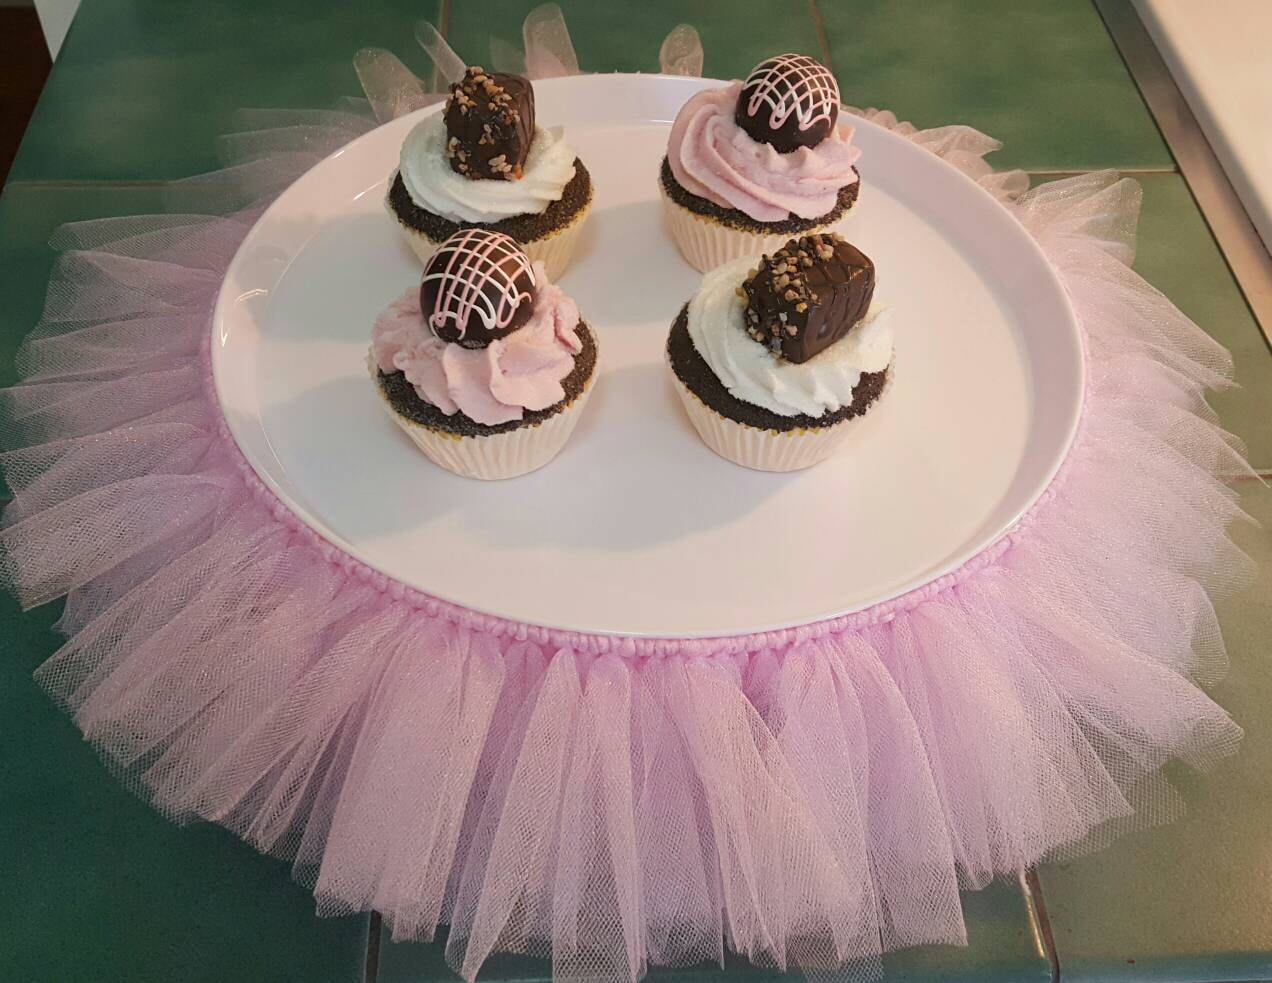 CAKE STAND Tutu Pink XL cupcake tier tulle skirt princess ballerina decorations Baby Shower 16 Birthday Party centerpiece bridal quinceanera & CAKE STAND Tutu Pink XL cupcake tier tulle skirt princess ...